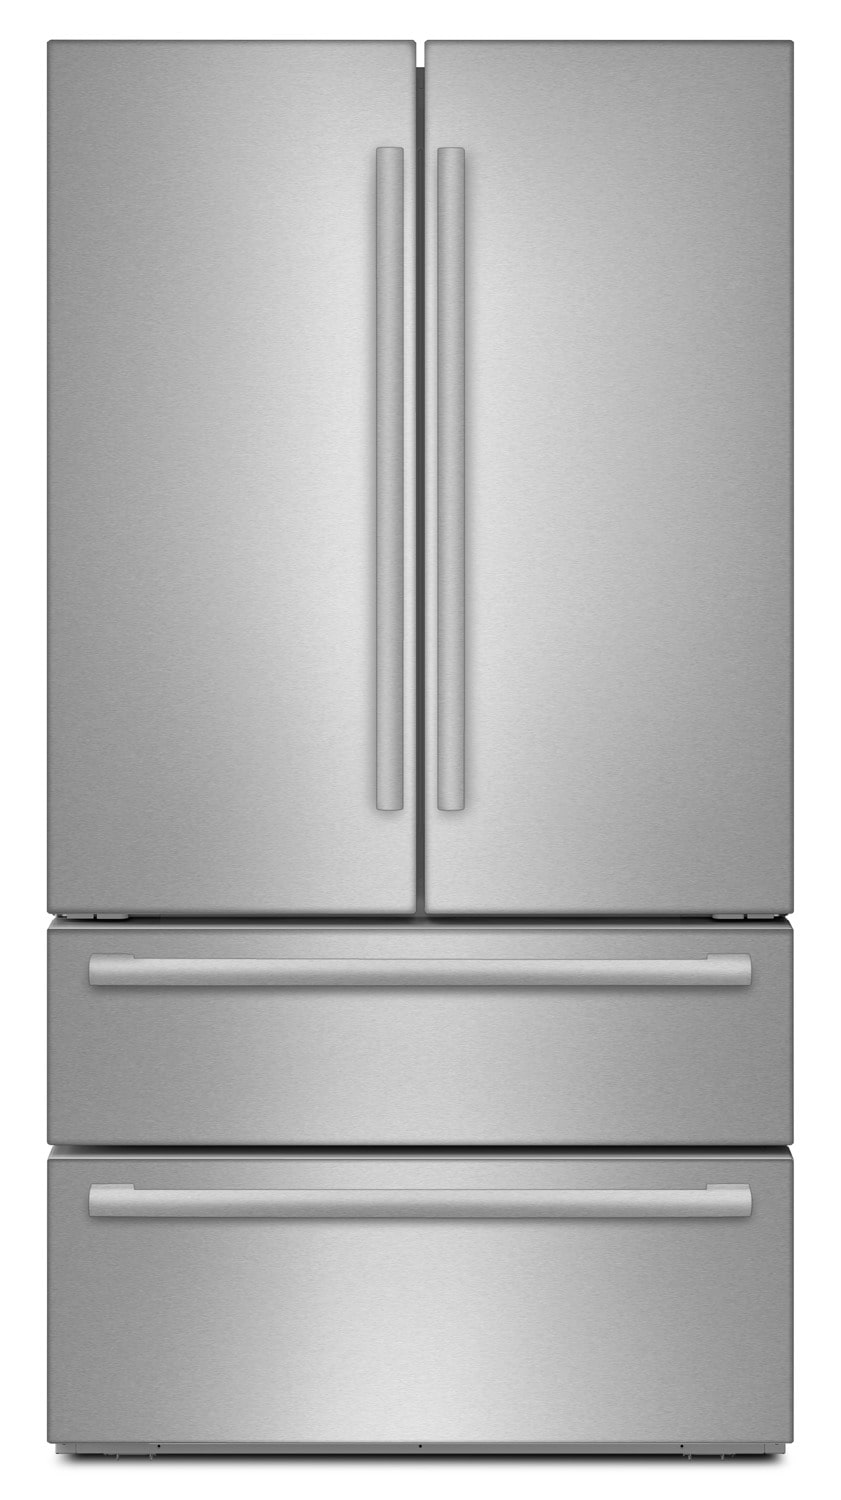 Bosch 800 Series 20.8 Cu. Ft. French-Door Refrigerator – B21CL81SNS